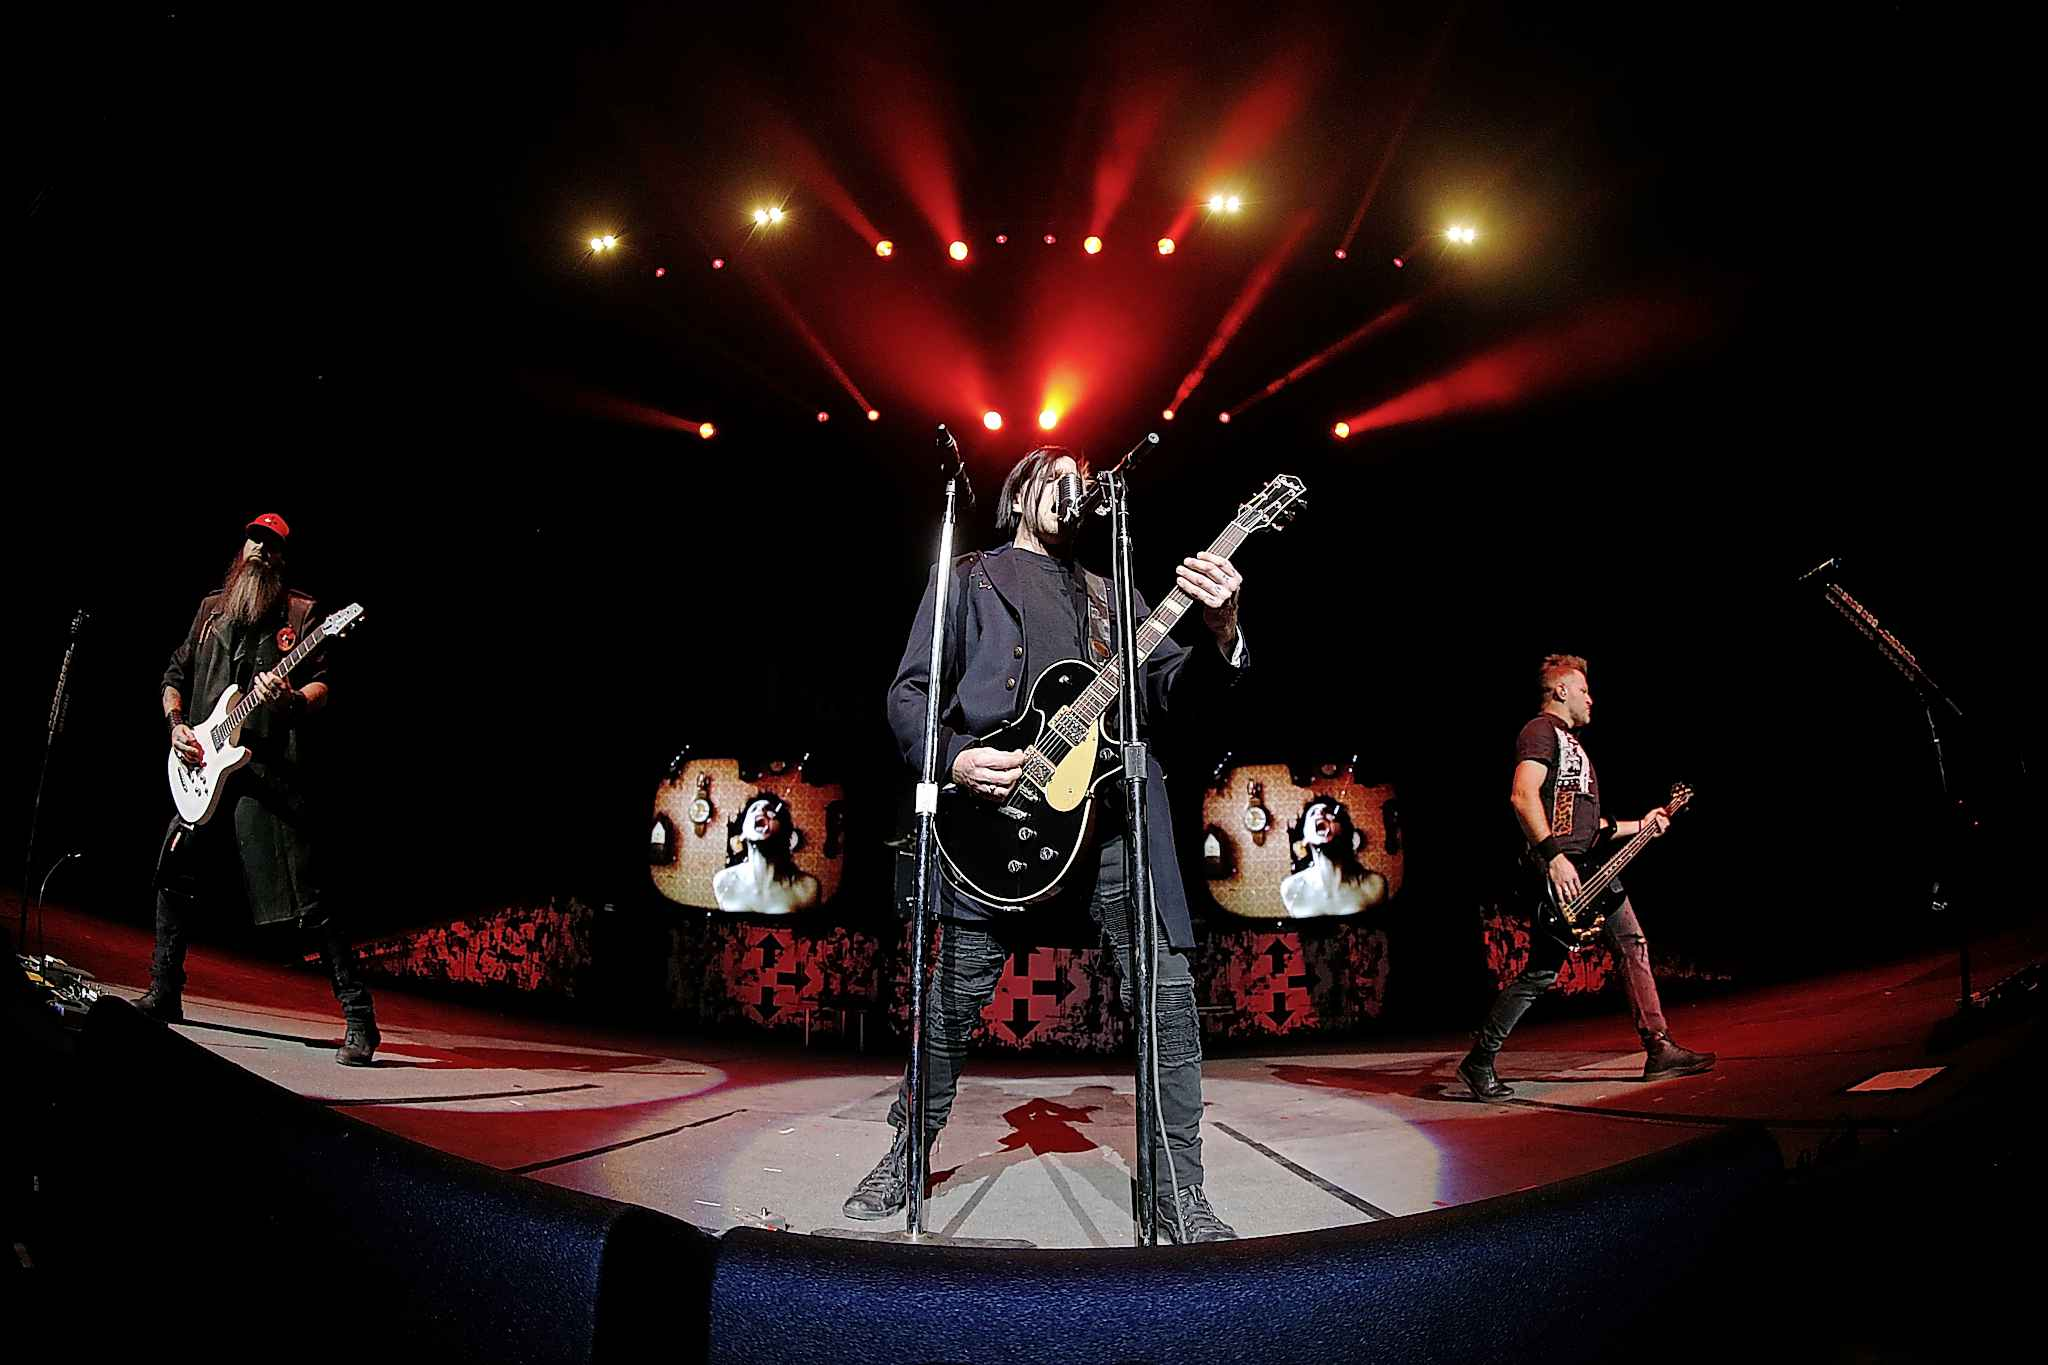 <p>Three Days Grace performed to an enthusiastic audience of 3,200 Tuesday night at Bell MTS Place.</p>